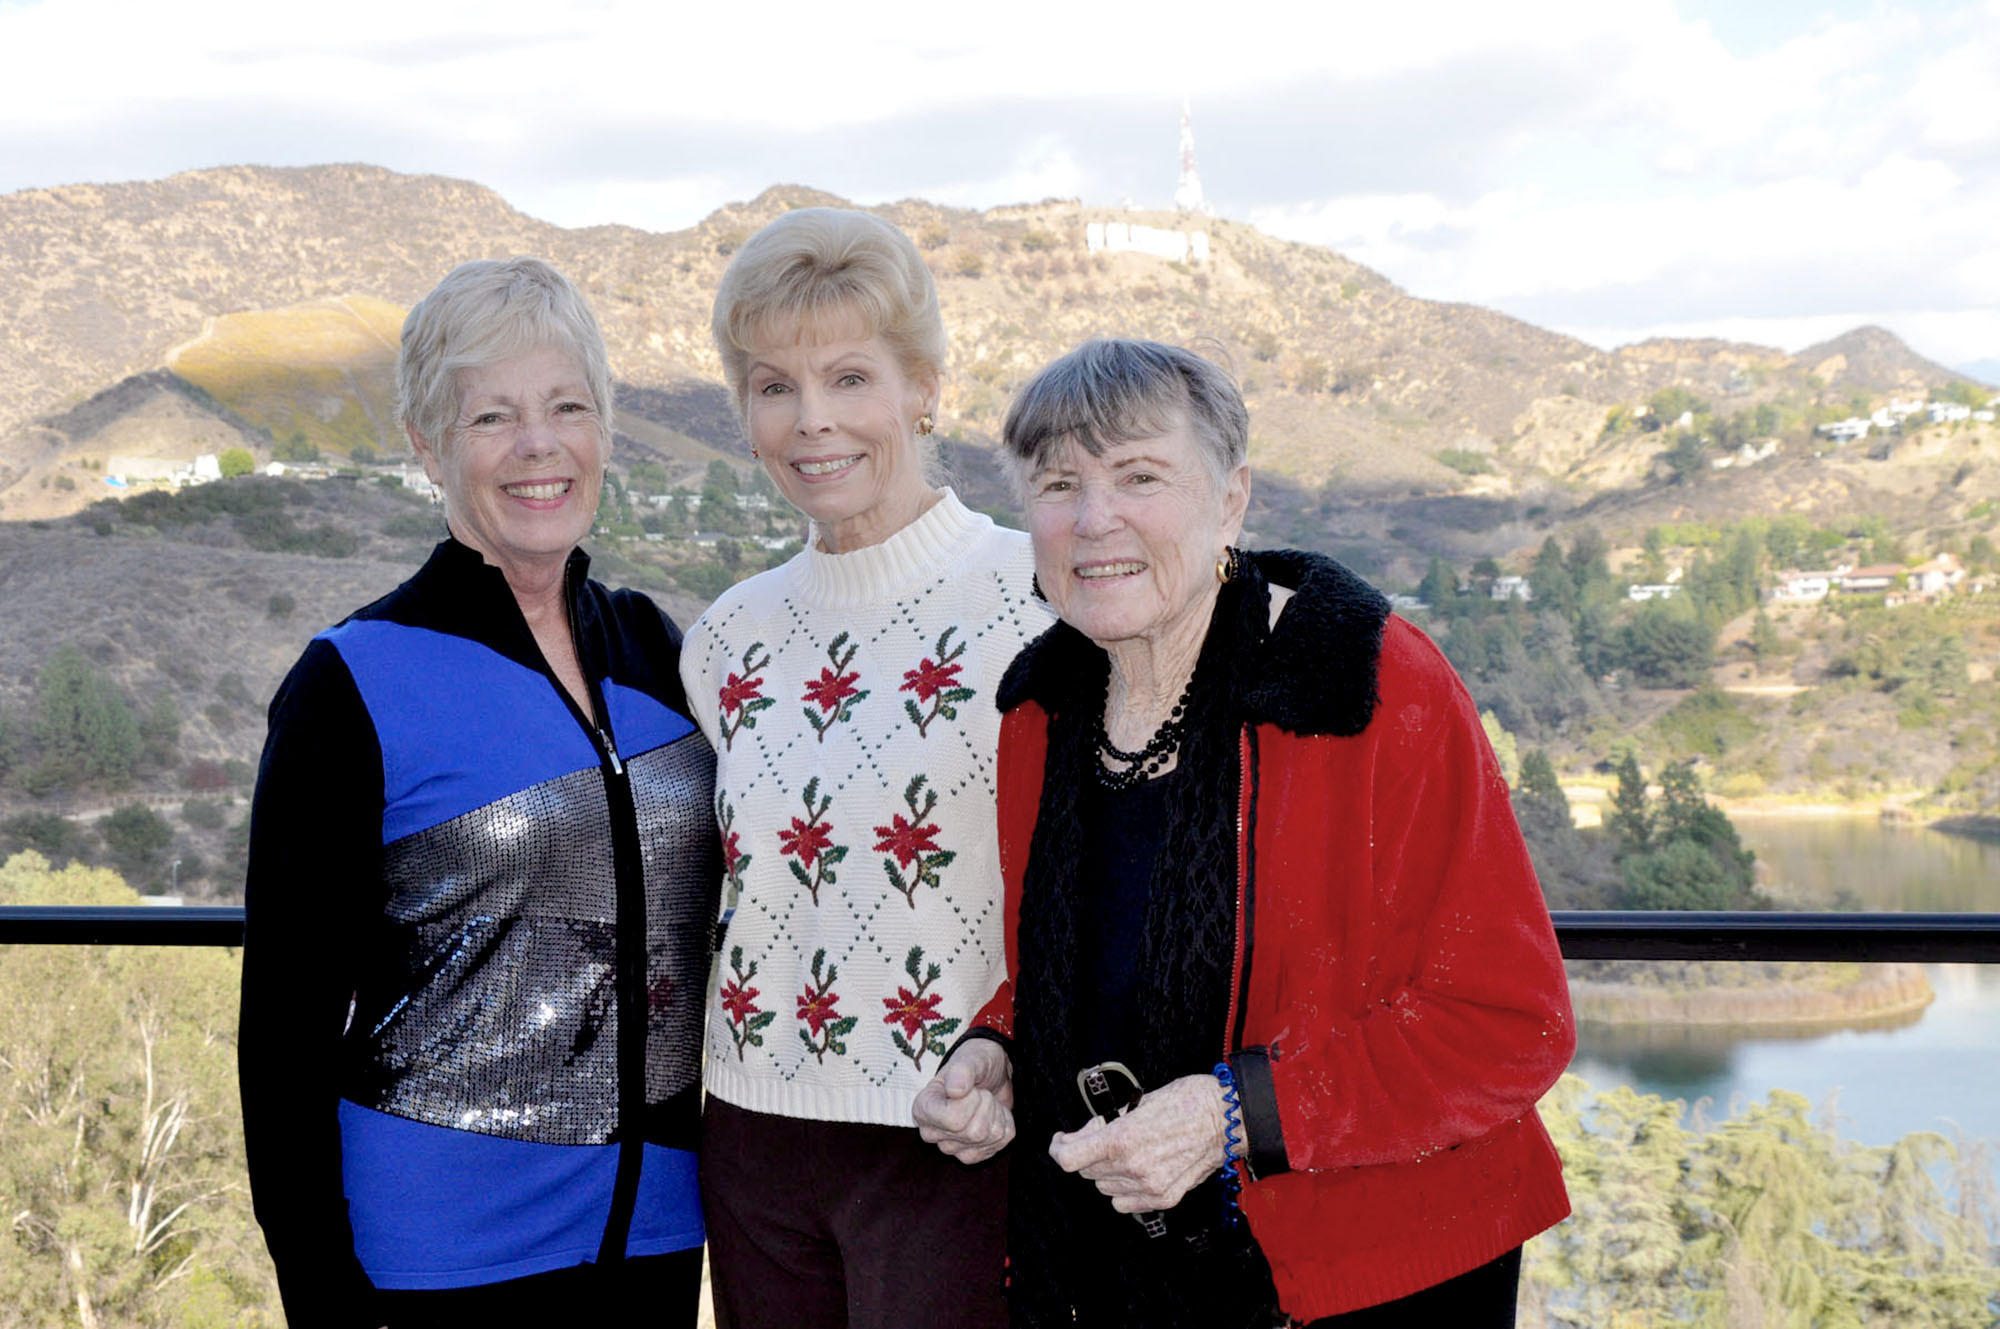 Chris Halajian, president of Oakmont League of Glendale, left, chats with League members Jeri Benton and Mary Lane. Lane hosted a recent League luncheon at her Hollywood Hills home overlooking Lake Hollywood and the famed Hollywood sign.